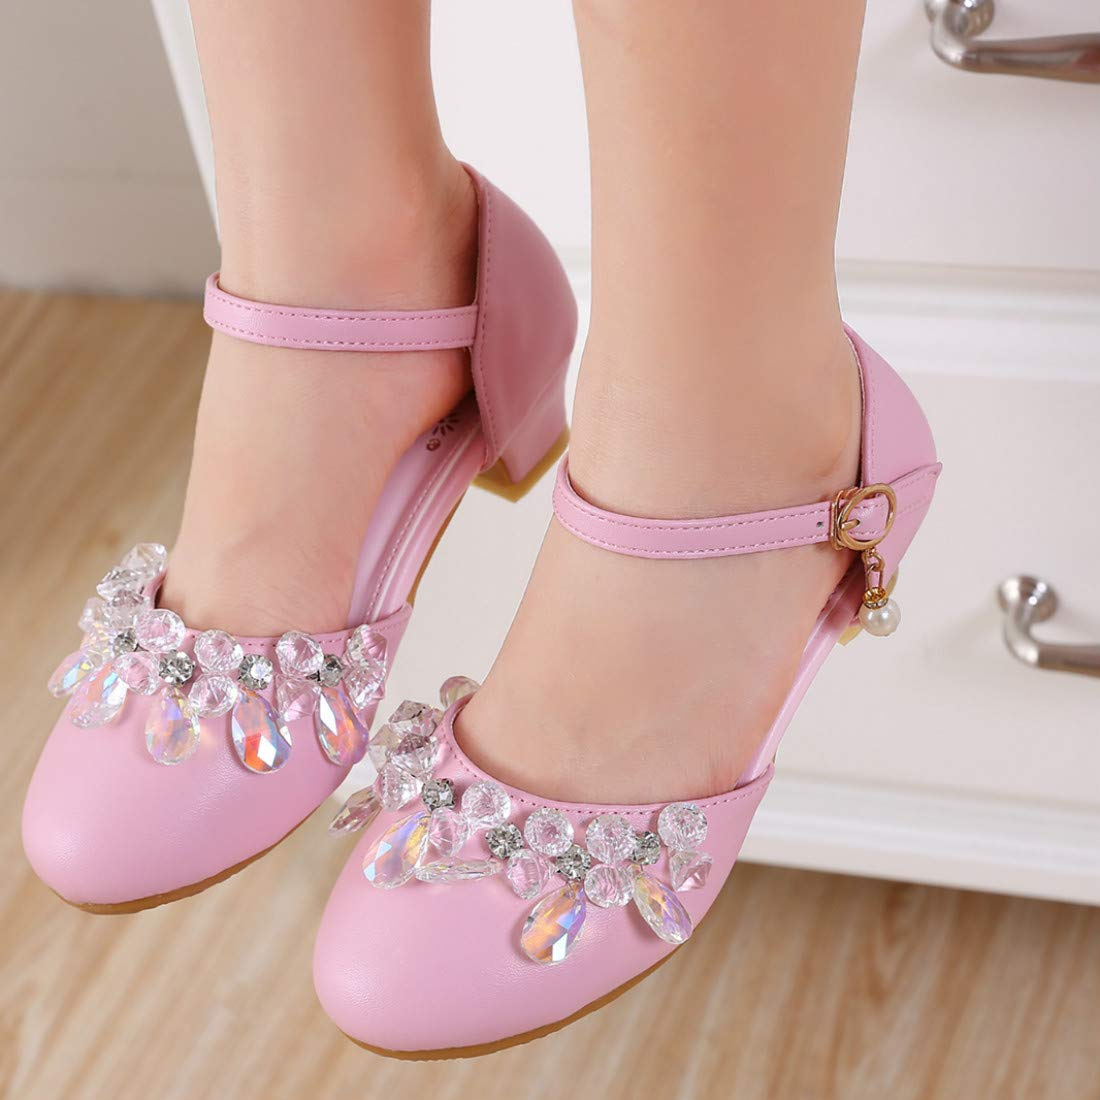 YIBLBOX Kids Girls Mary Janes Shoes Glitter Low Heels Bridesmaids Princess Party Dress Shoes YBBUS-PYNKIPX3055